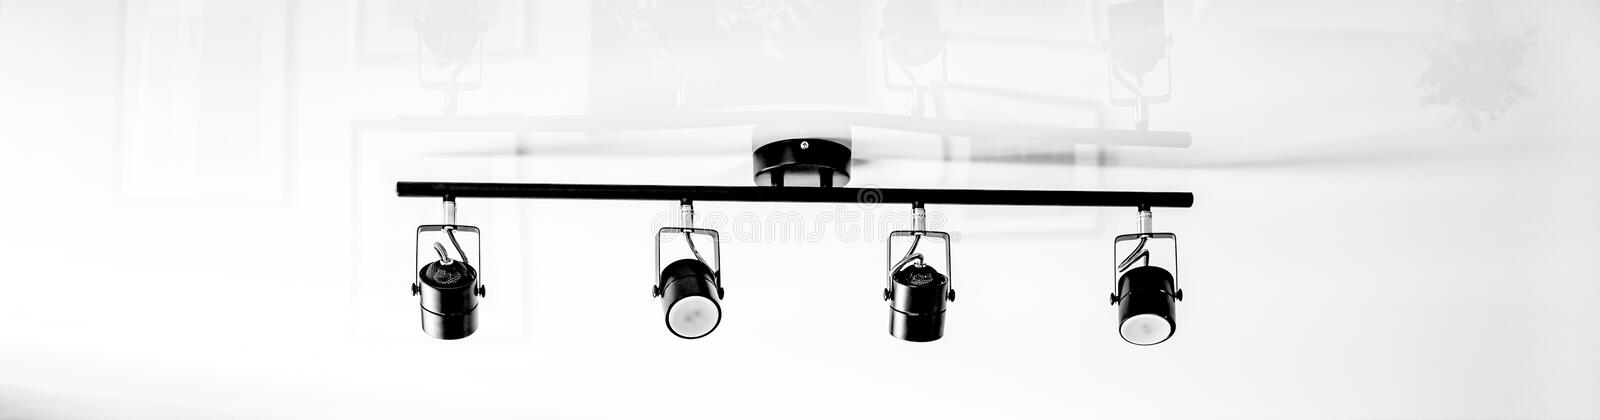 A fragment of the interior of the home loft lighting. Abstract lamp in the form of a soffit in daylight. stock images